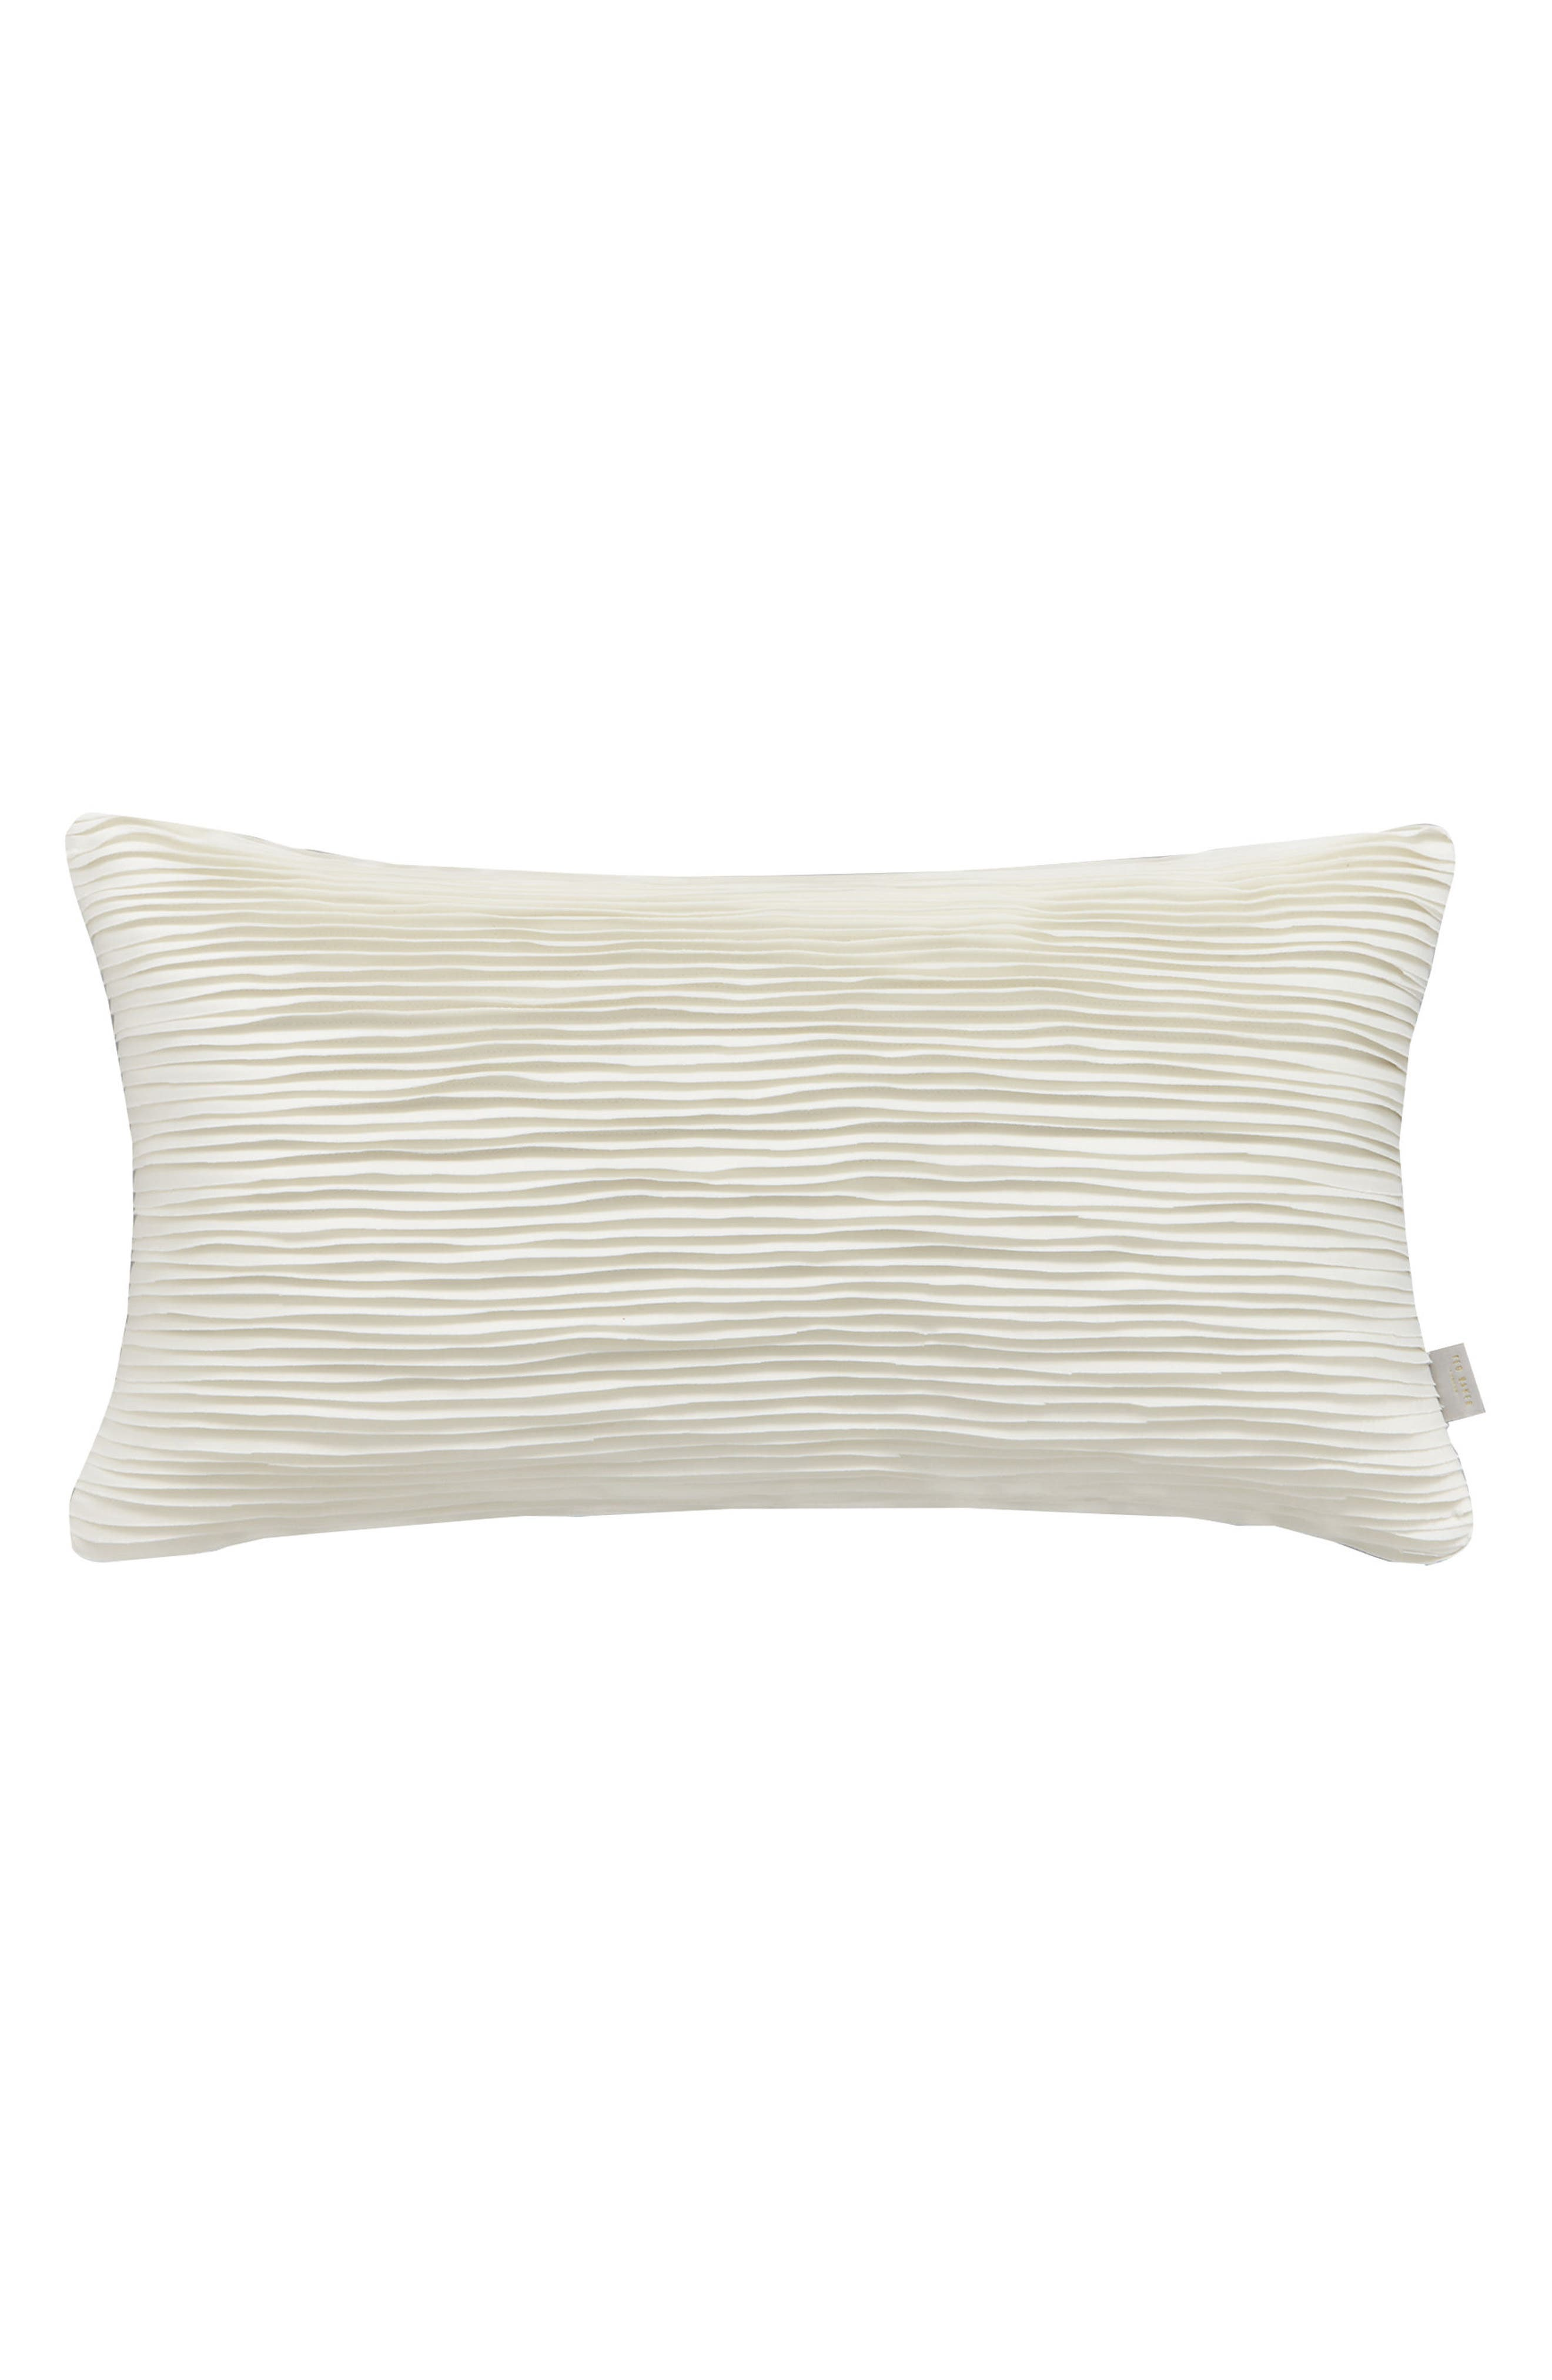 Frayed Accent Pillow,                             Main thumbnail 1, color,                             Ivory